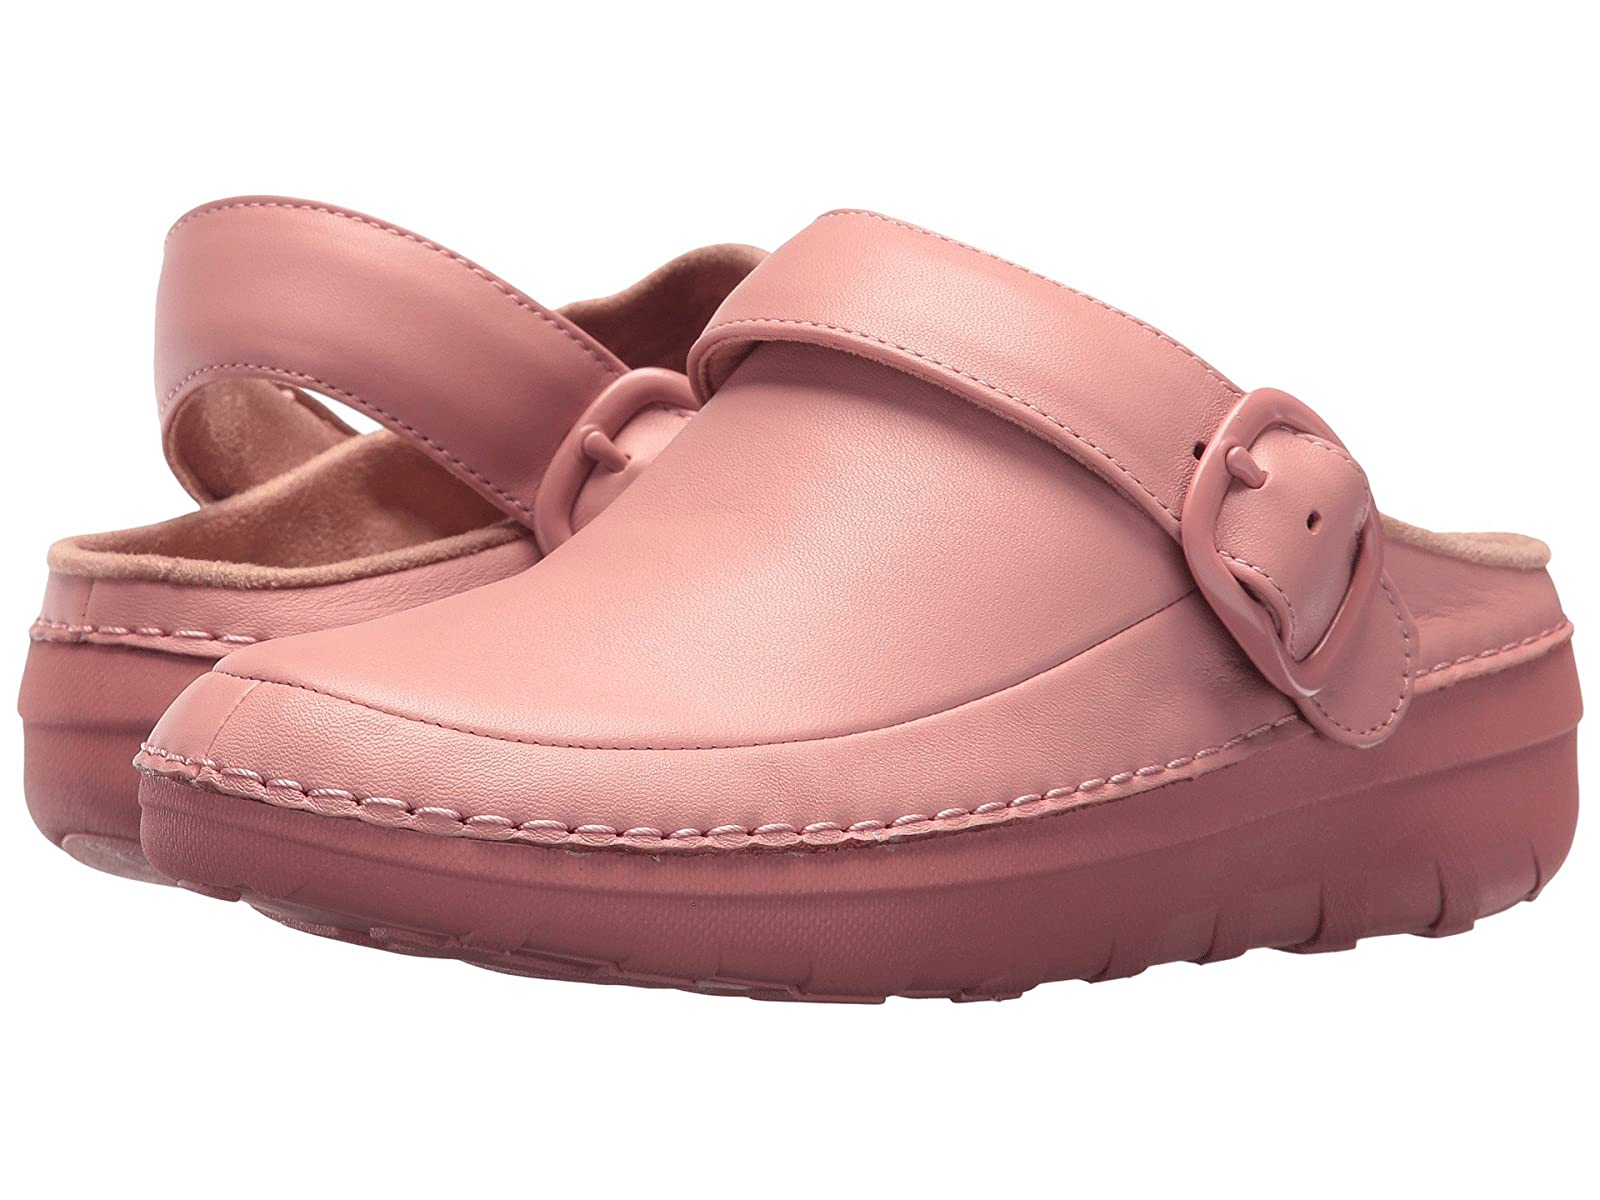 FitFlop Gogh™ Pro SuperlightCheap and distinctive eye-catching shoes